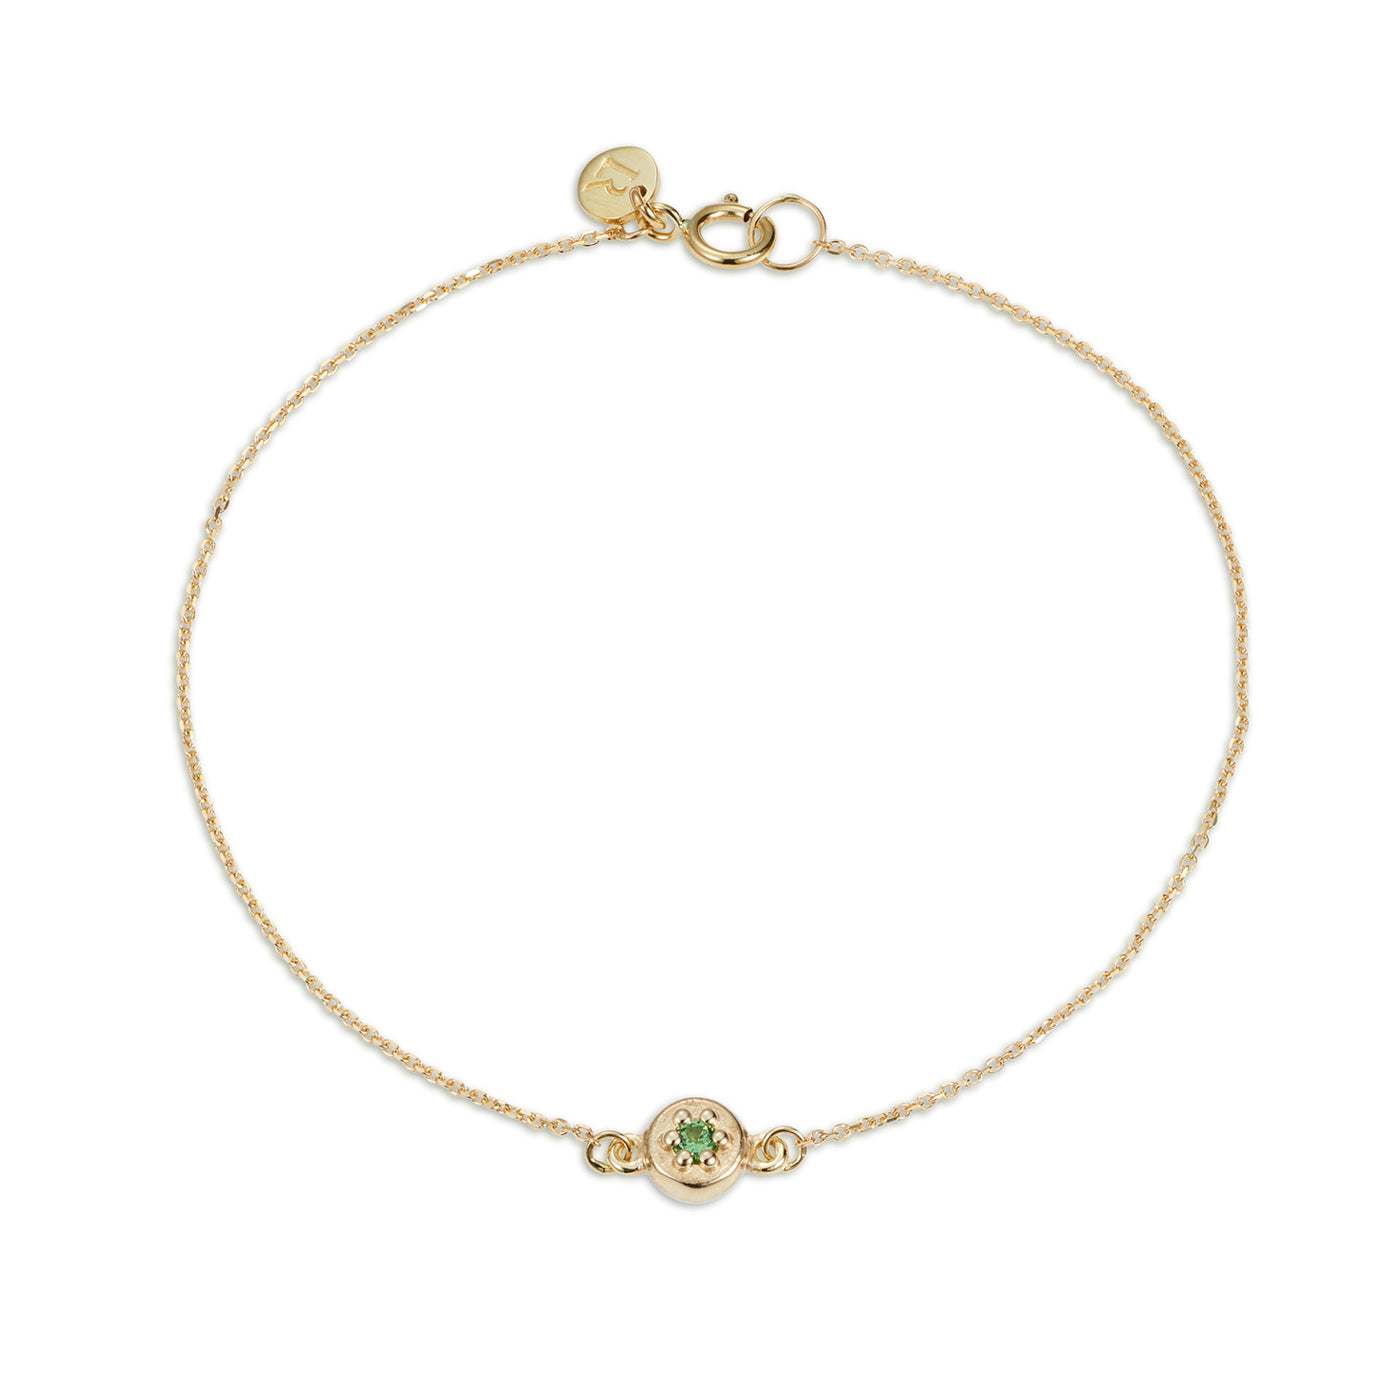 Luke Rose Jewellery gold green tsavorite garnet bracelet